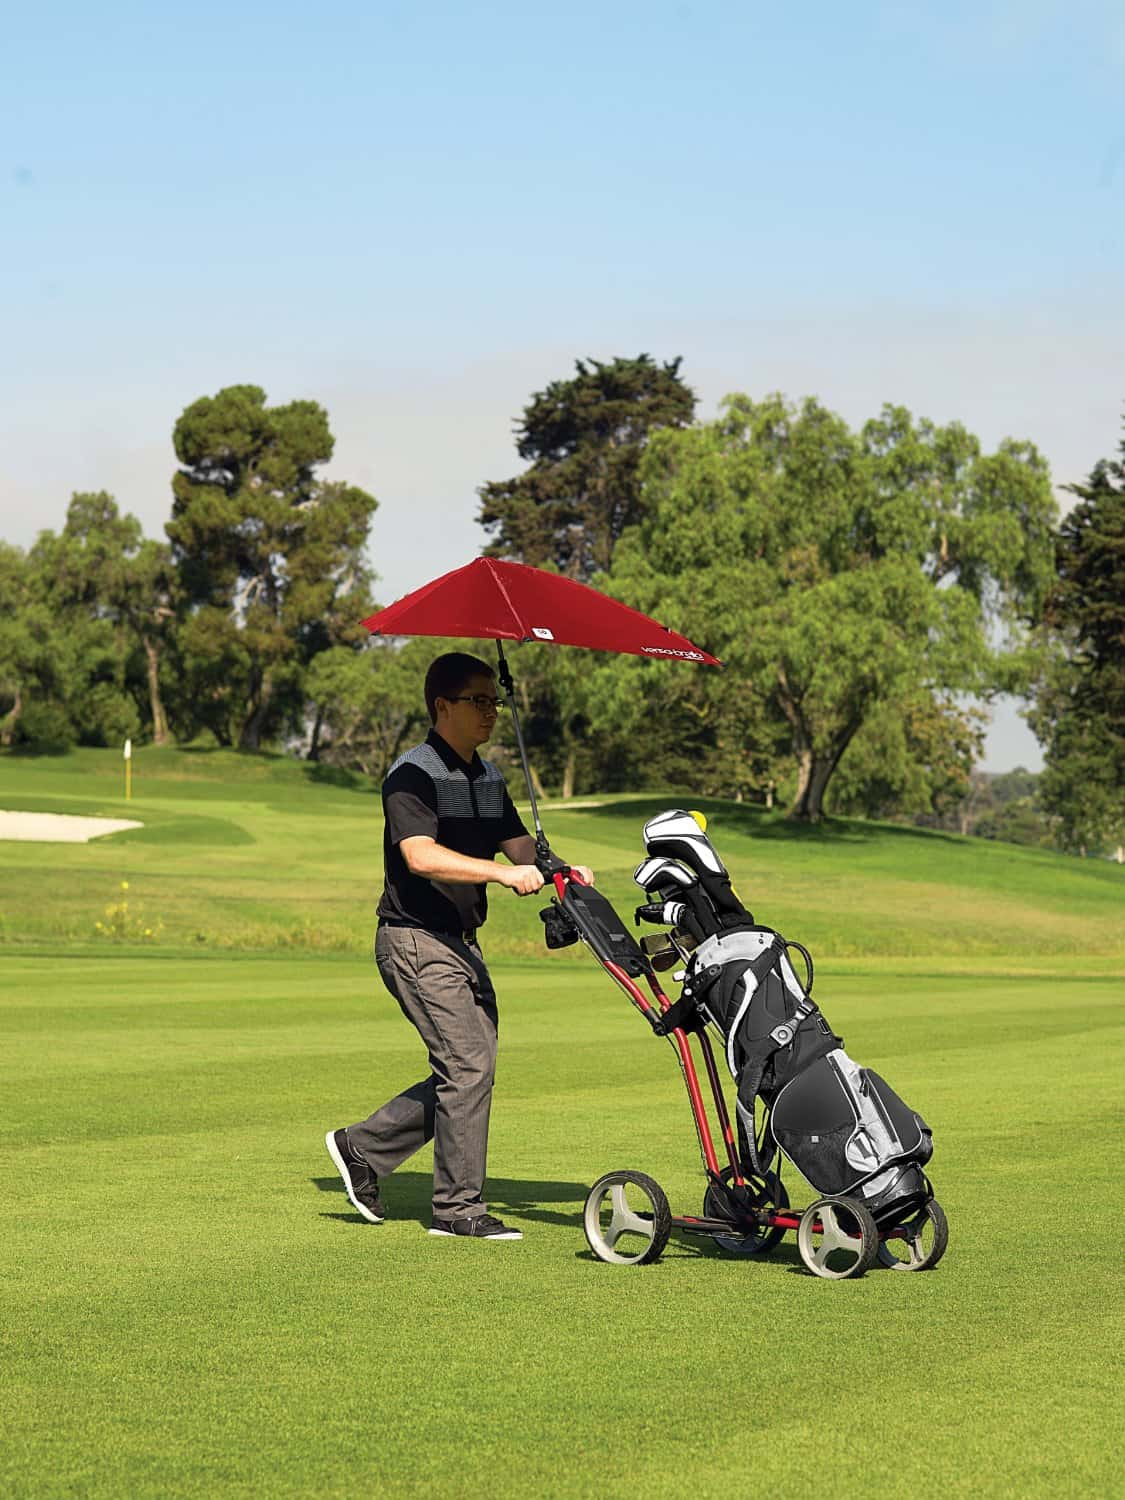 Sport-Brella Versa-Brella All Position Umbrella for Golf